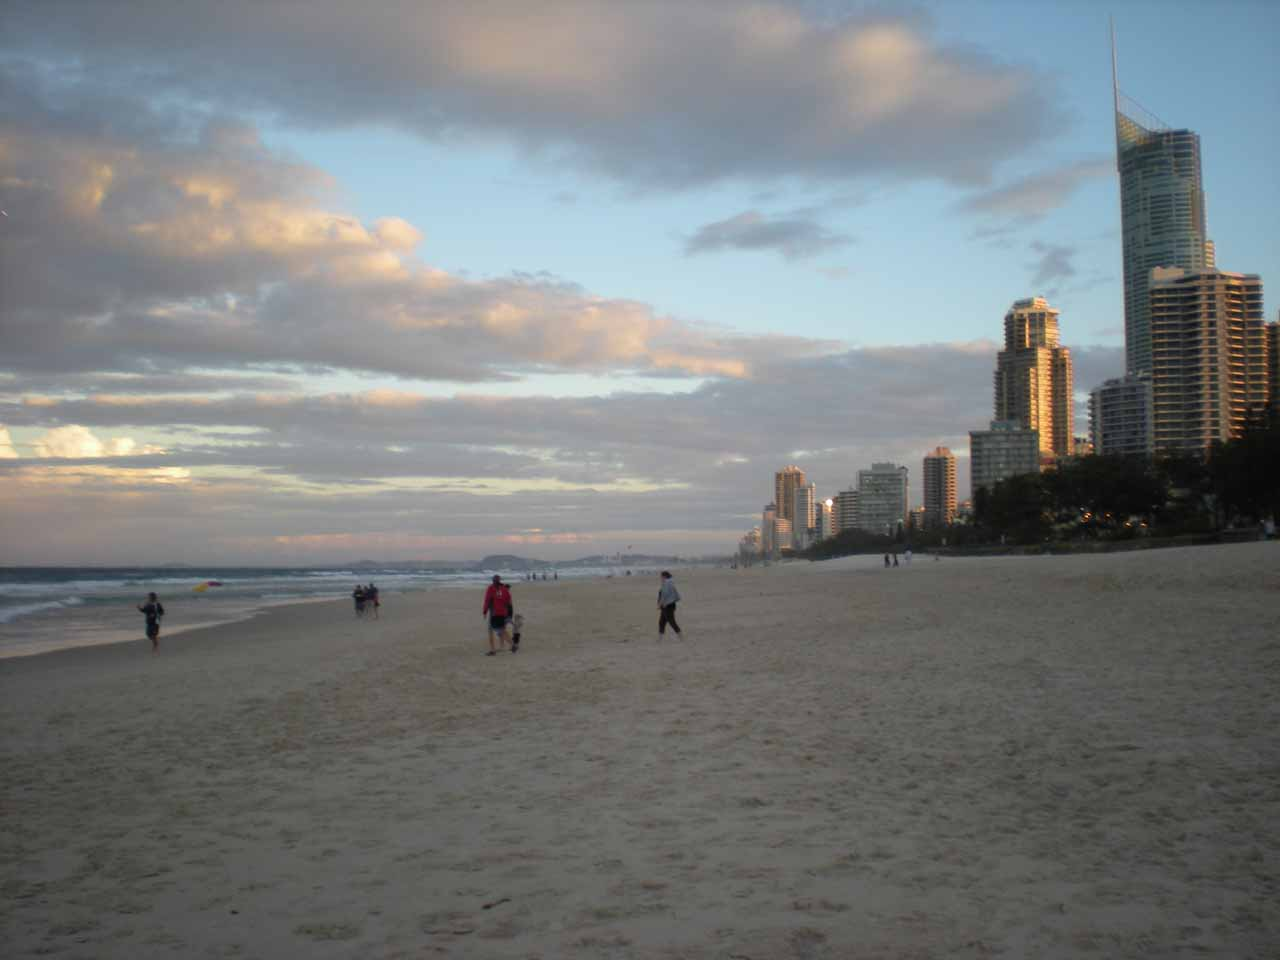 Perhaps the nearest base for Springbrook National Park (including the Natural Bridge) was from the Gold Coast of which Surfer's Paradise (pictured here) was also a part of